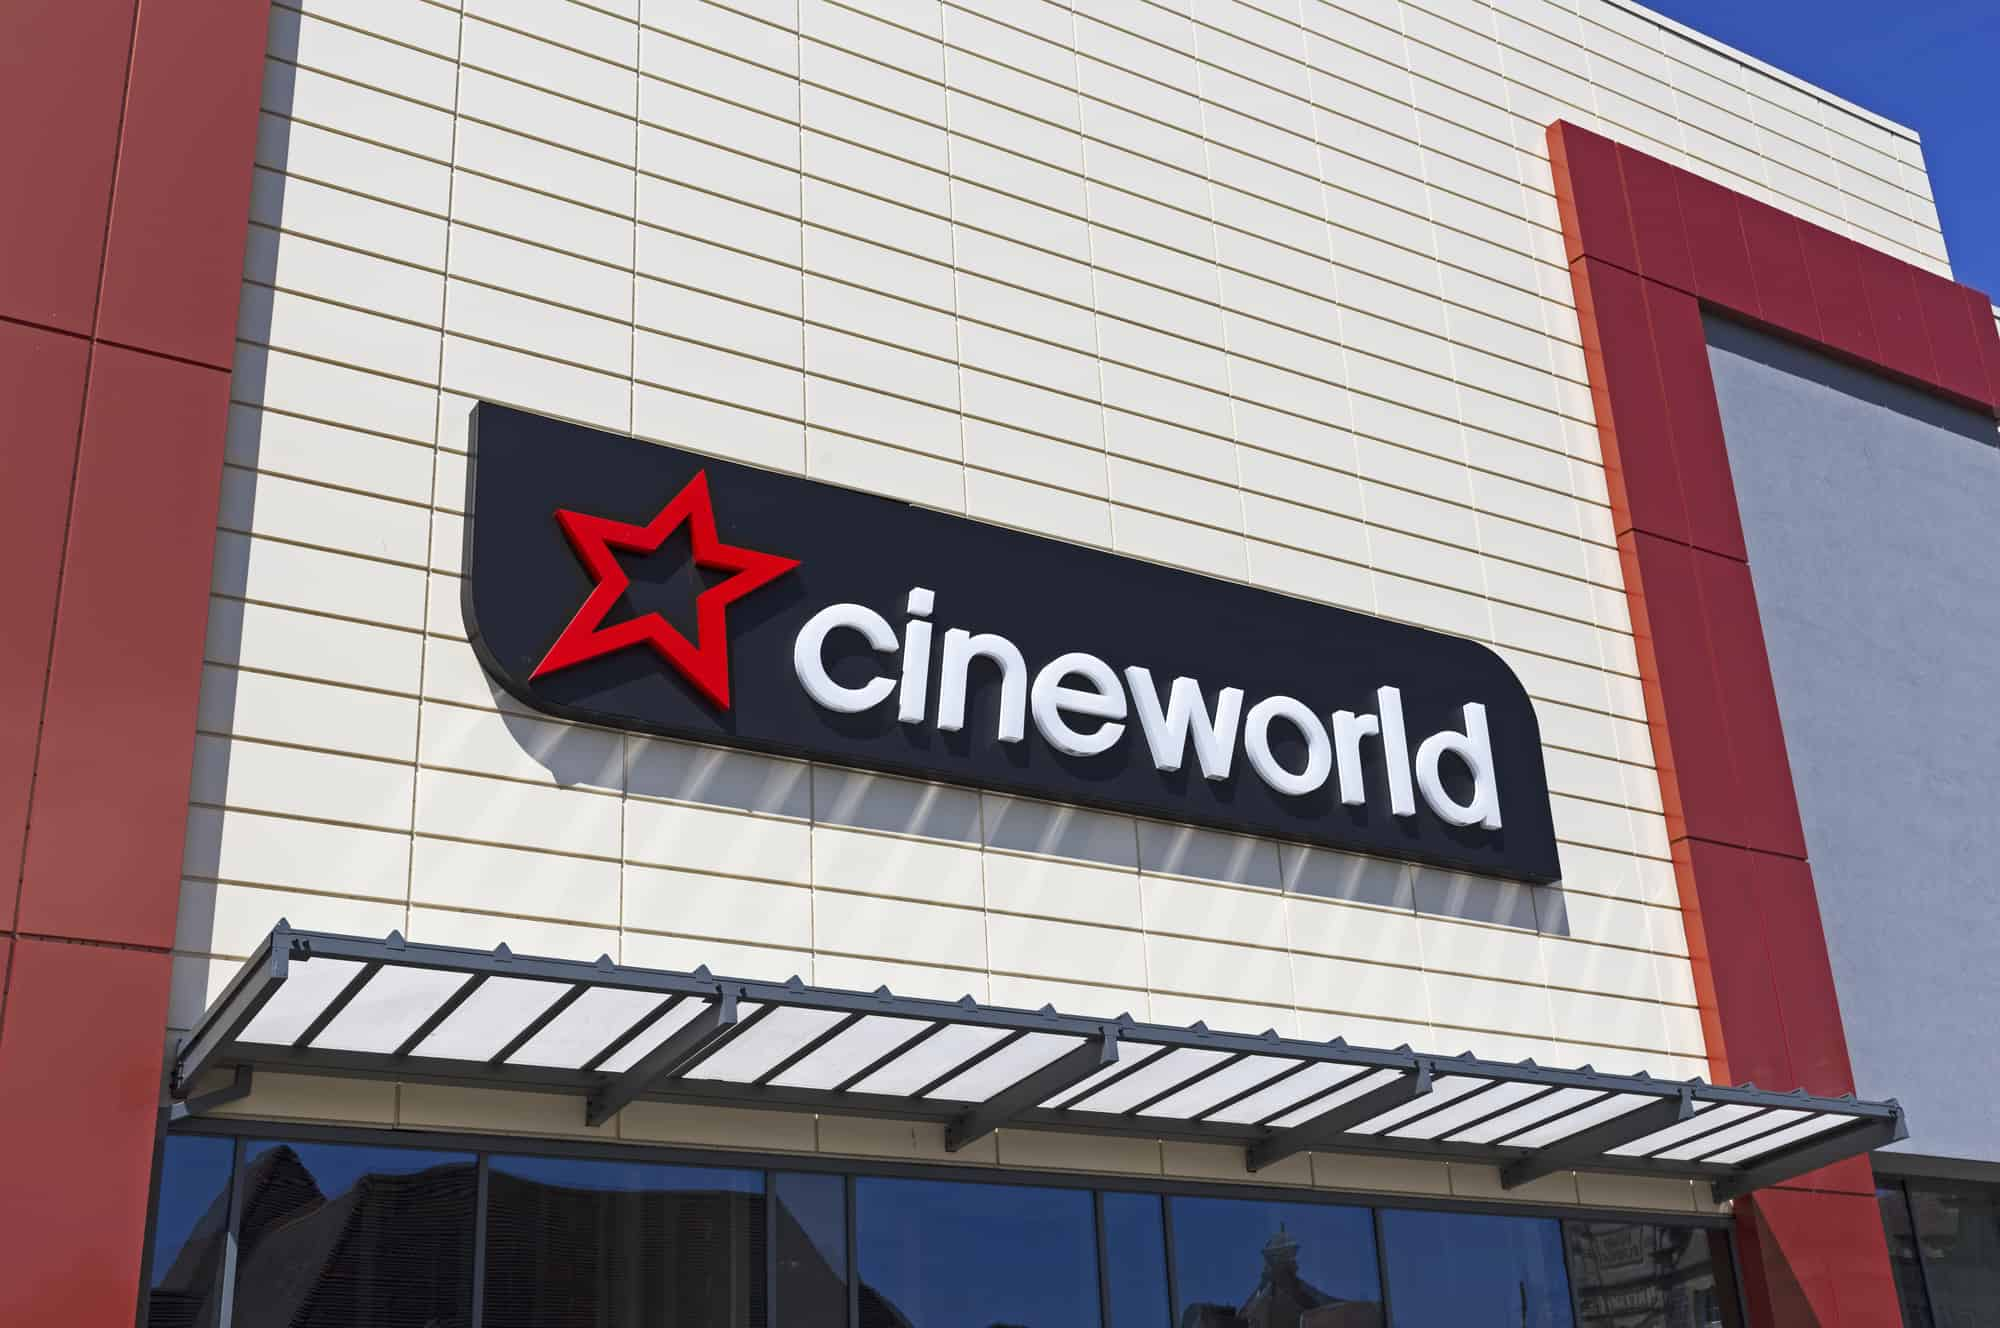 Is this the end of Cineworld in the UK?